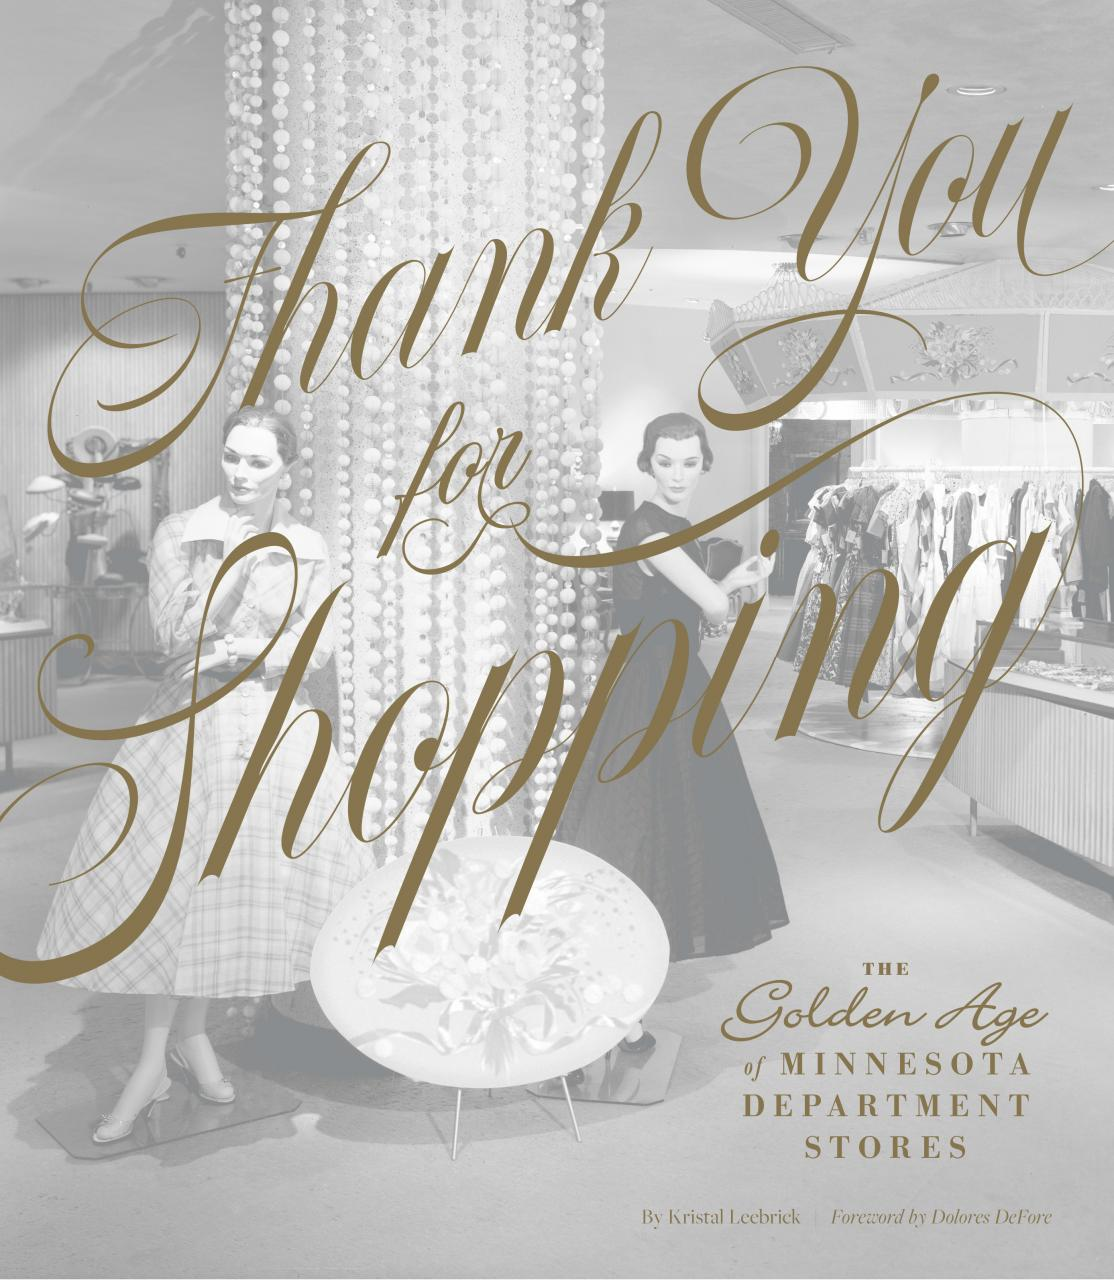 Thank You for Shopping book.